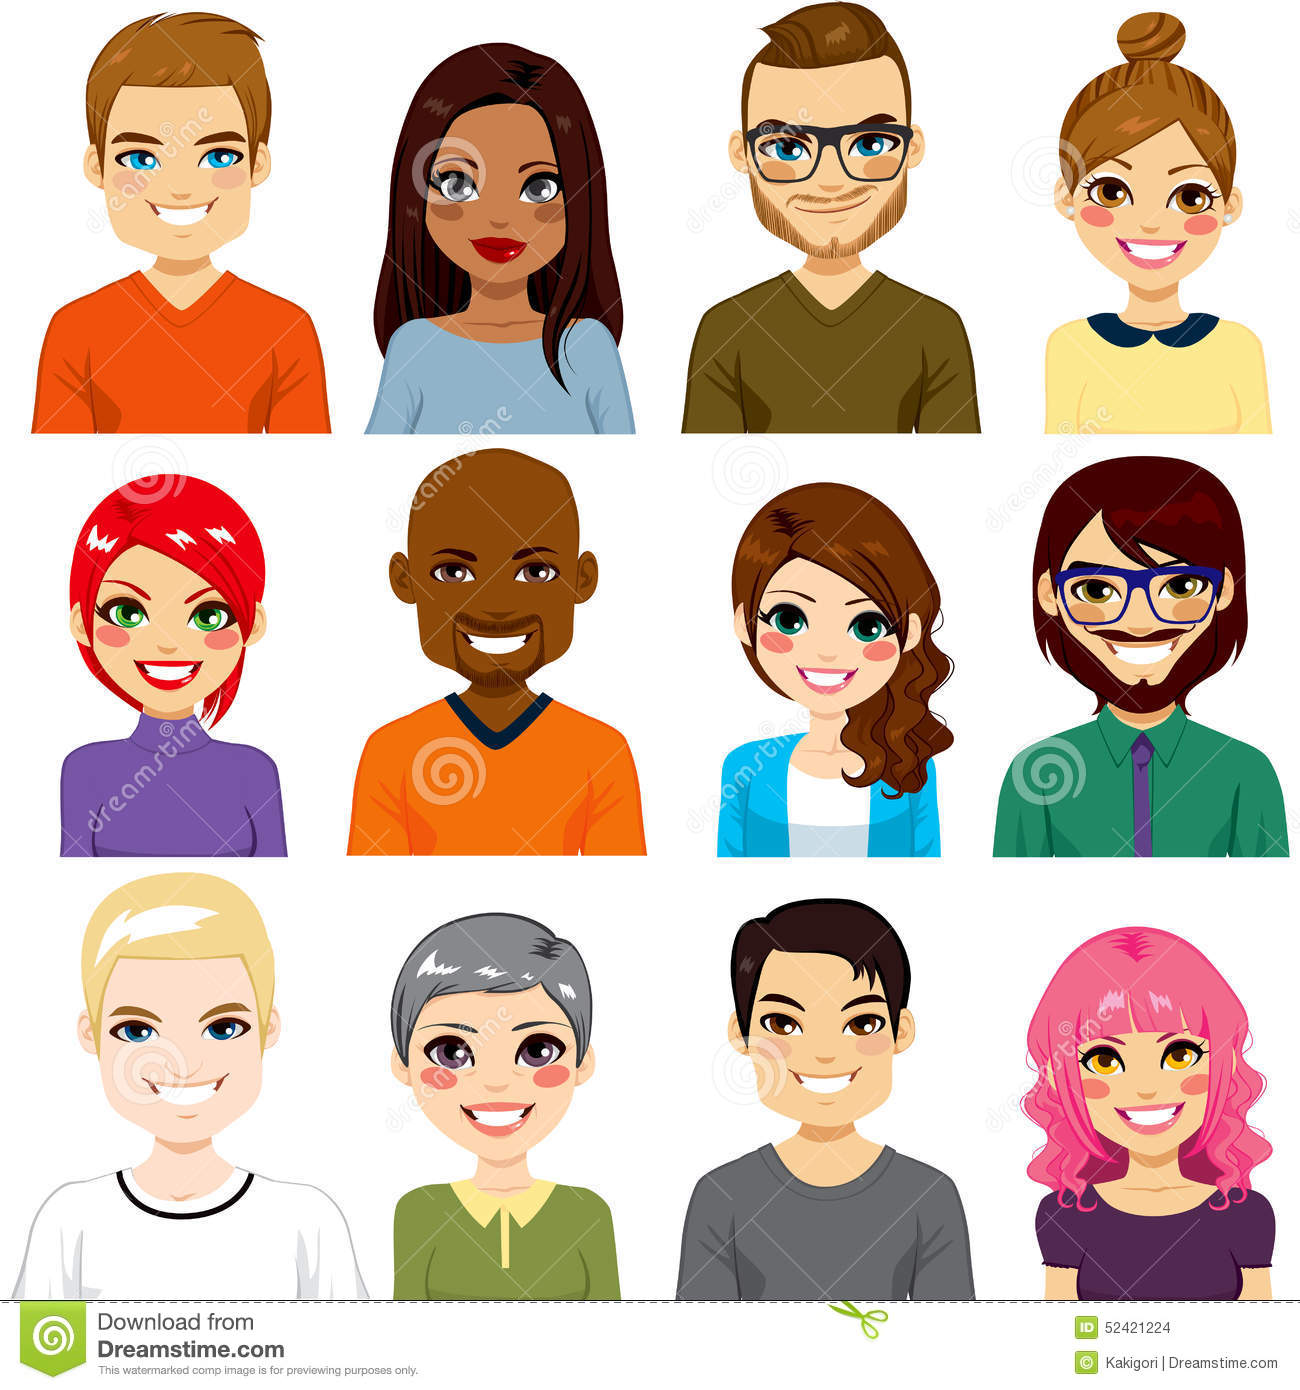 Crowd Of Indian Women Vector Avatars Stock Vector: Diverse Avatar Collection Stock Vector